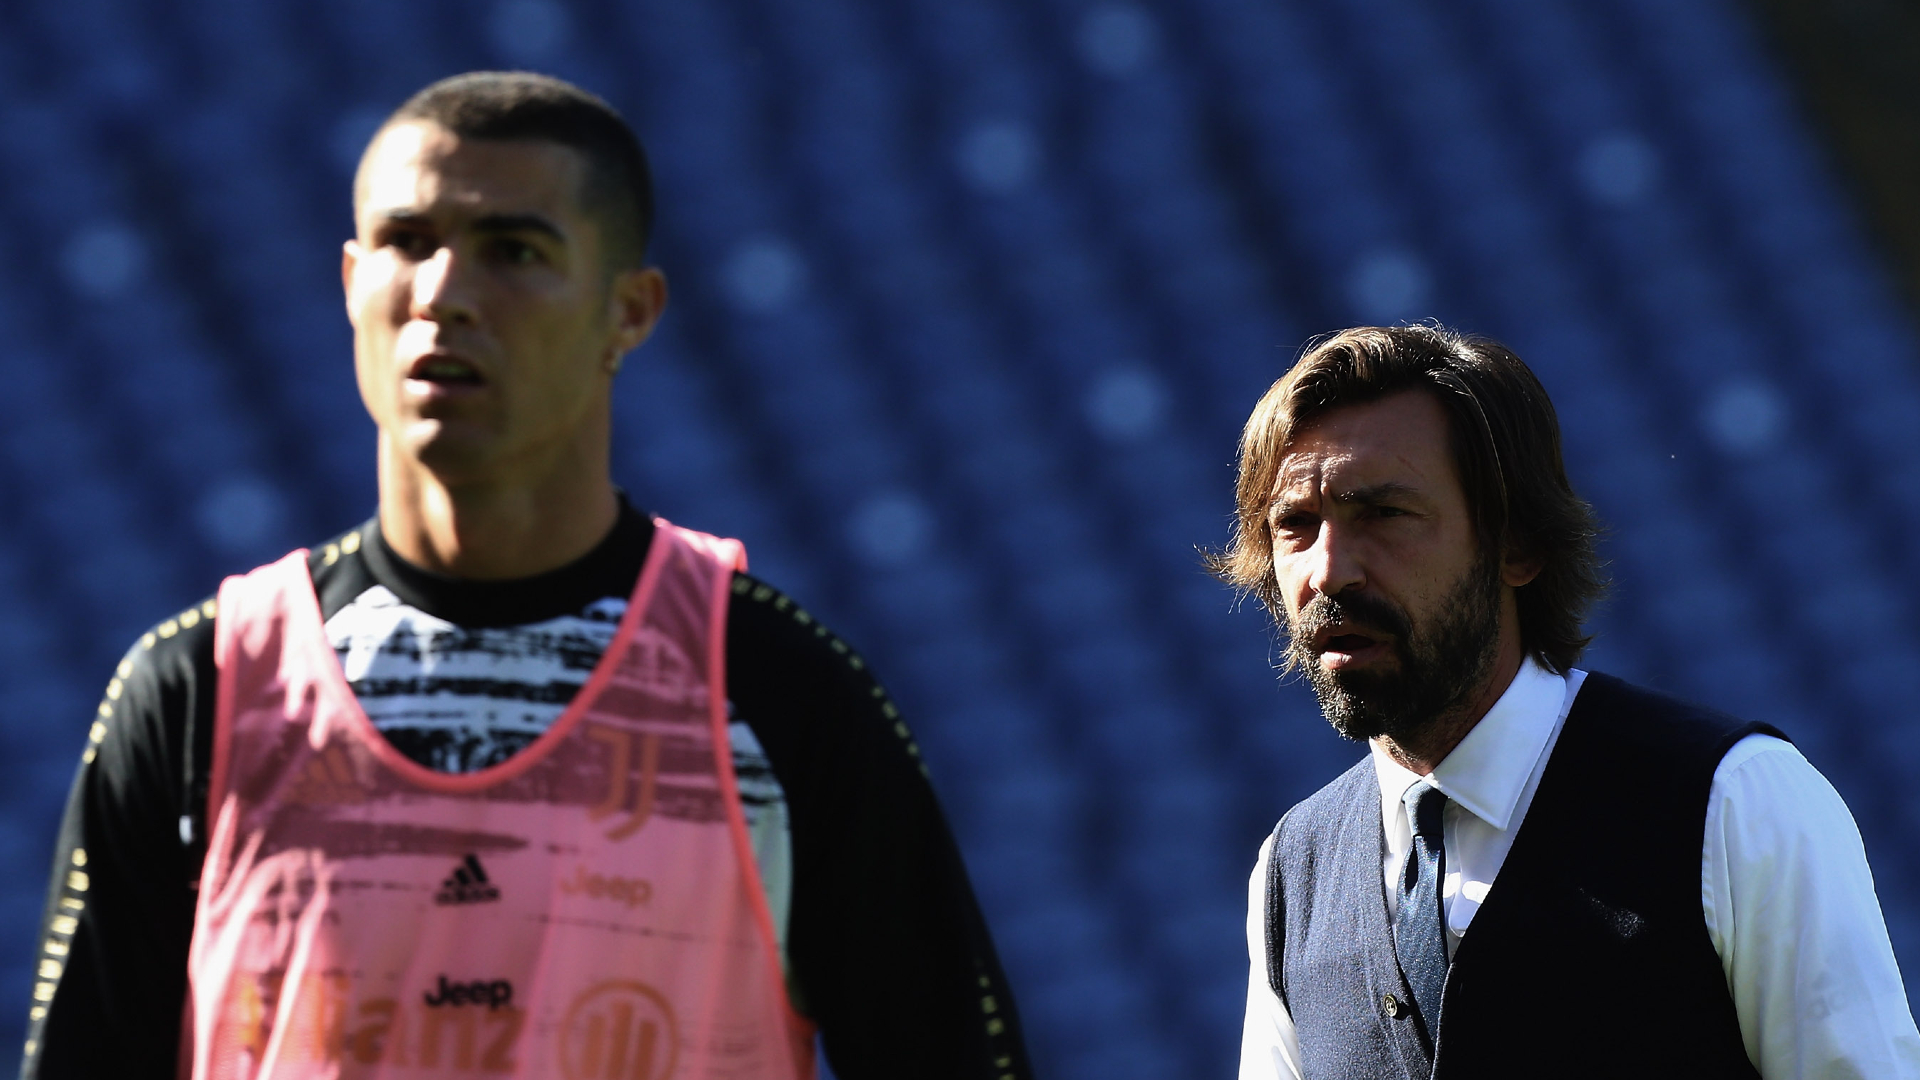 'Ronaldo is a free citizen' - Juventus coach Pirlo responds to police investigation over coronavirus rule break